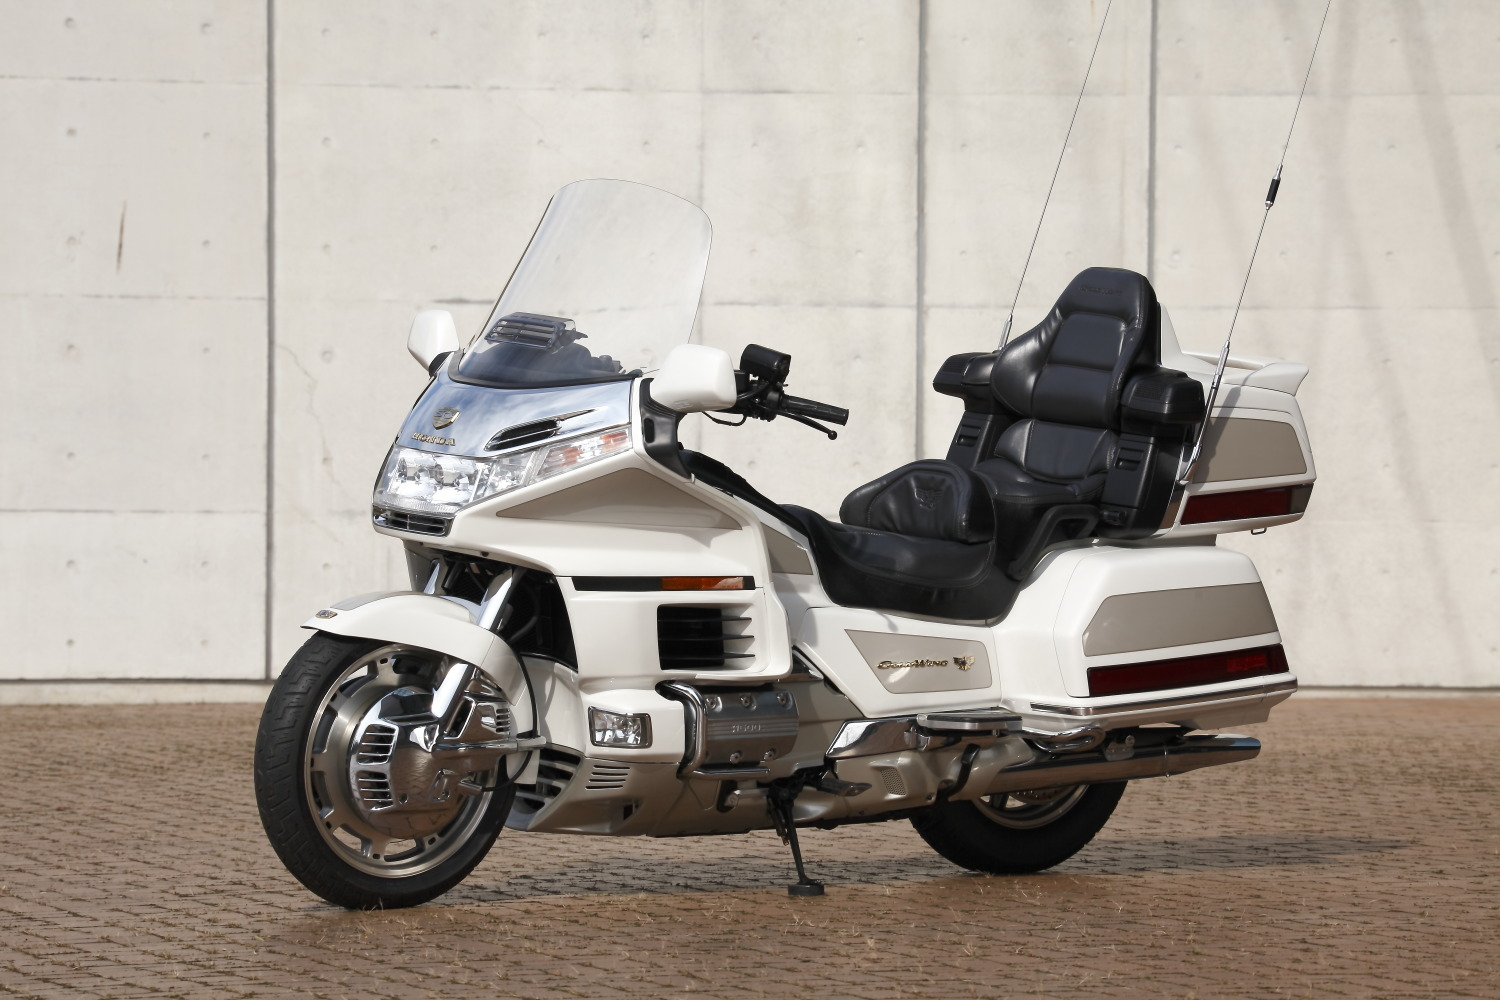 GL1500 honda Gold Wing